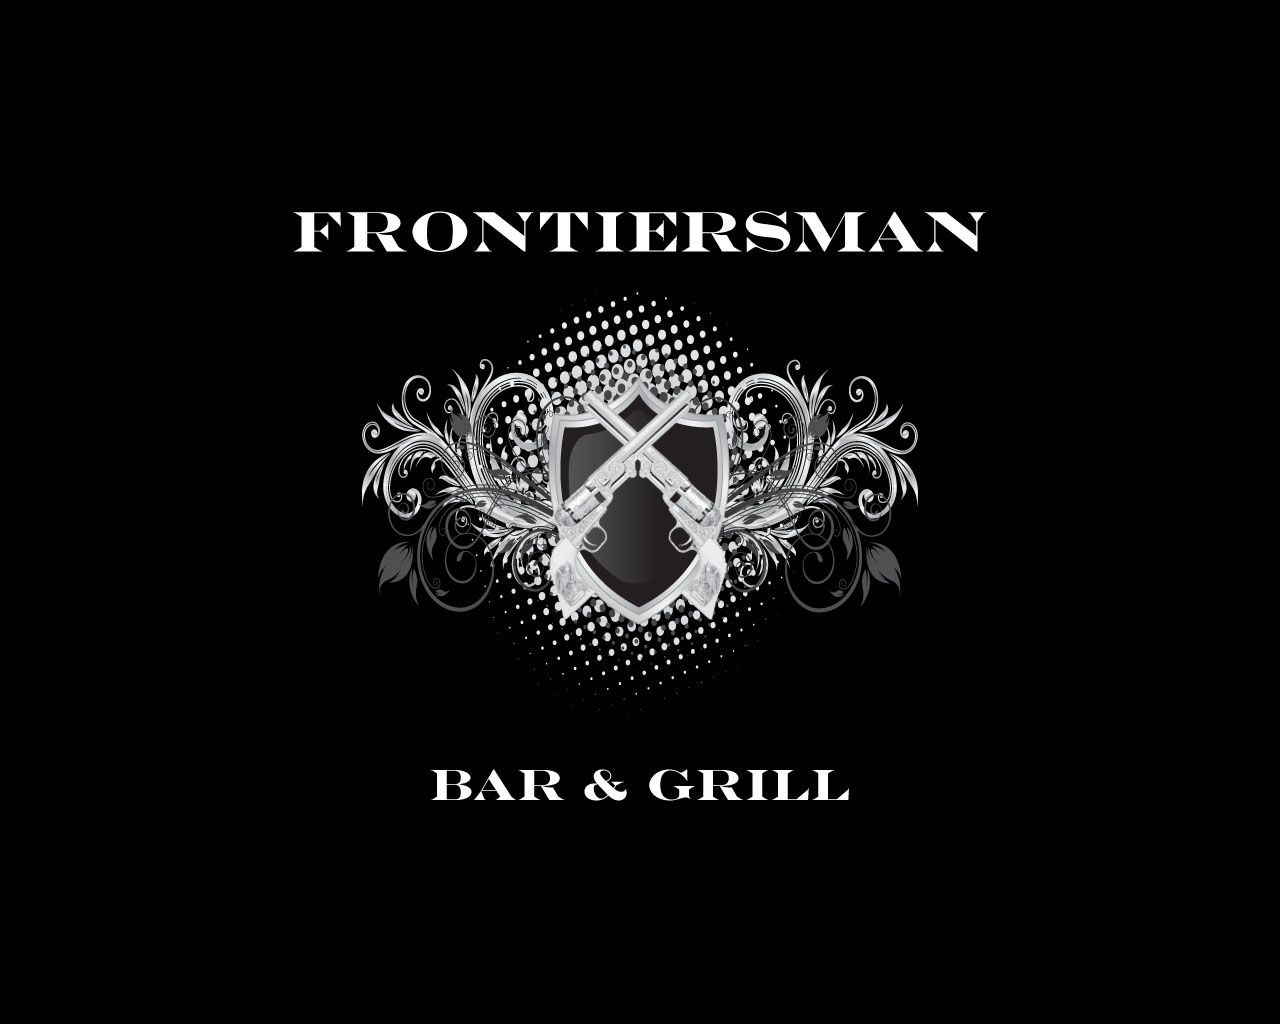 Frontiersman Bar & Grill